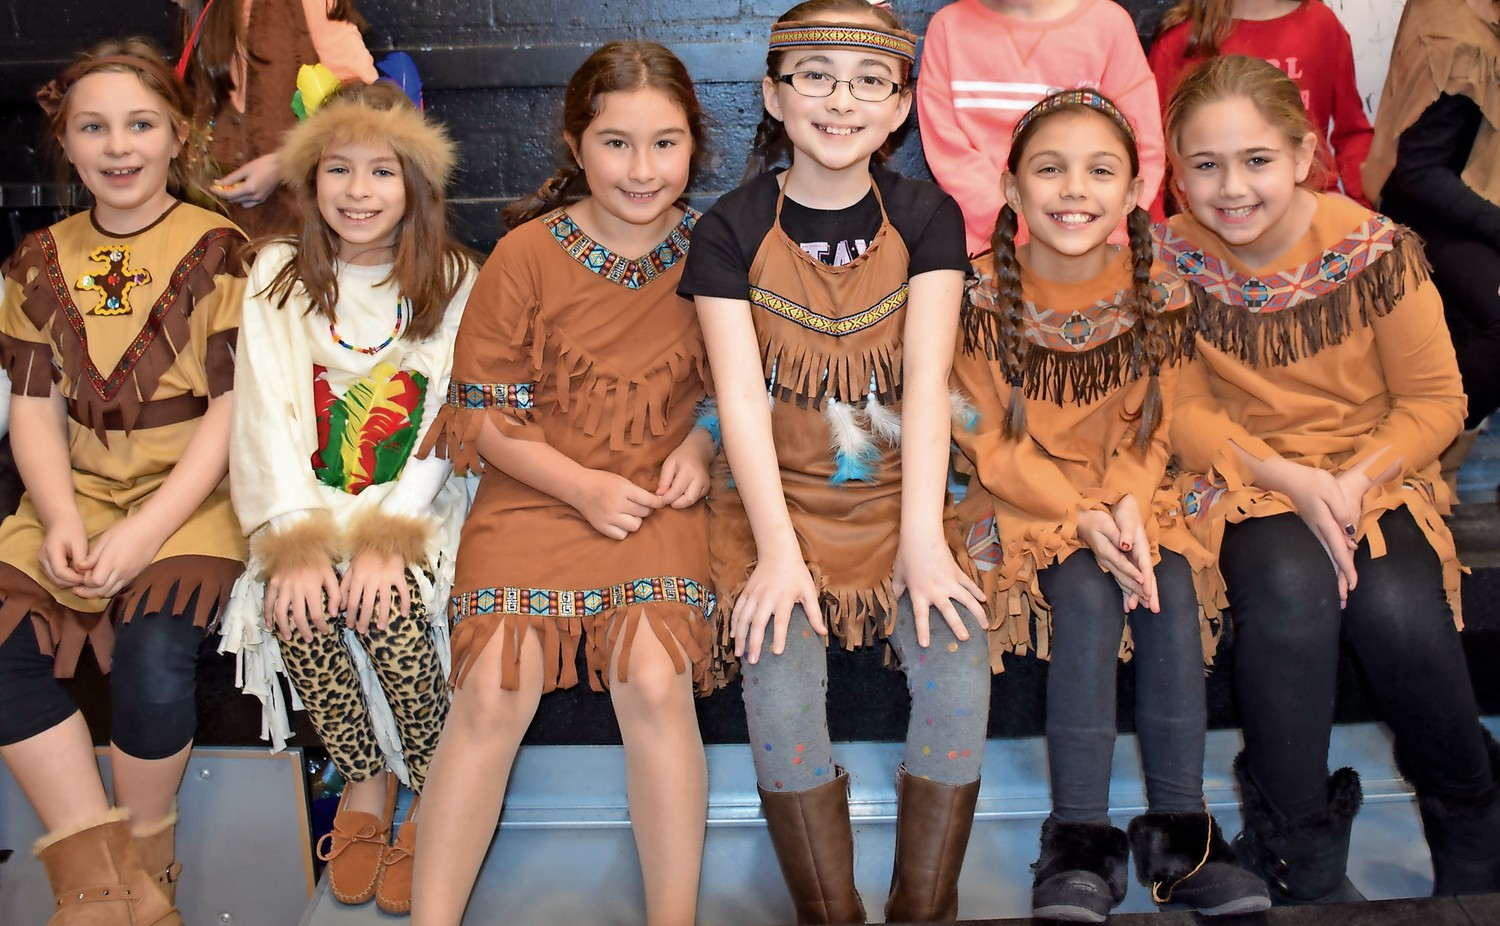 Dressed in traditional costumes, fourth-grade Forest Lake Elementary School students celebrated the school's Native American Day on Jan. 11.